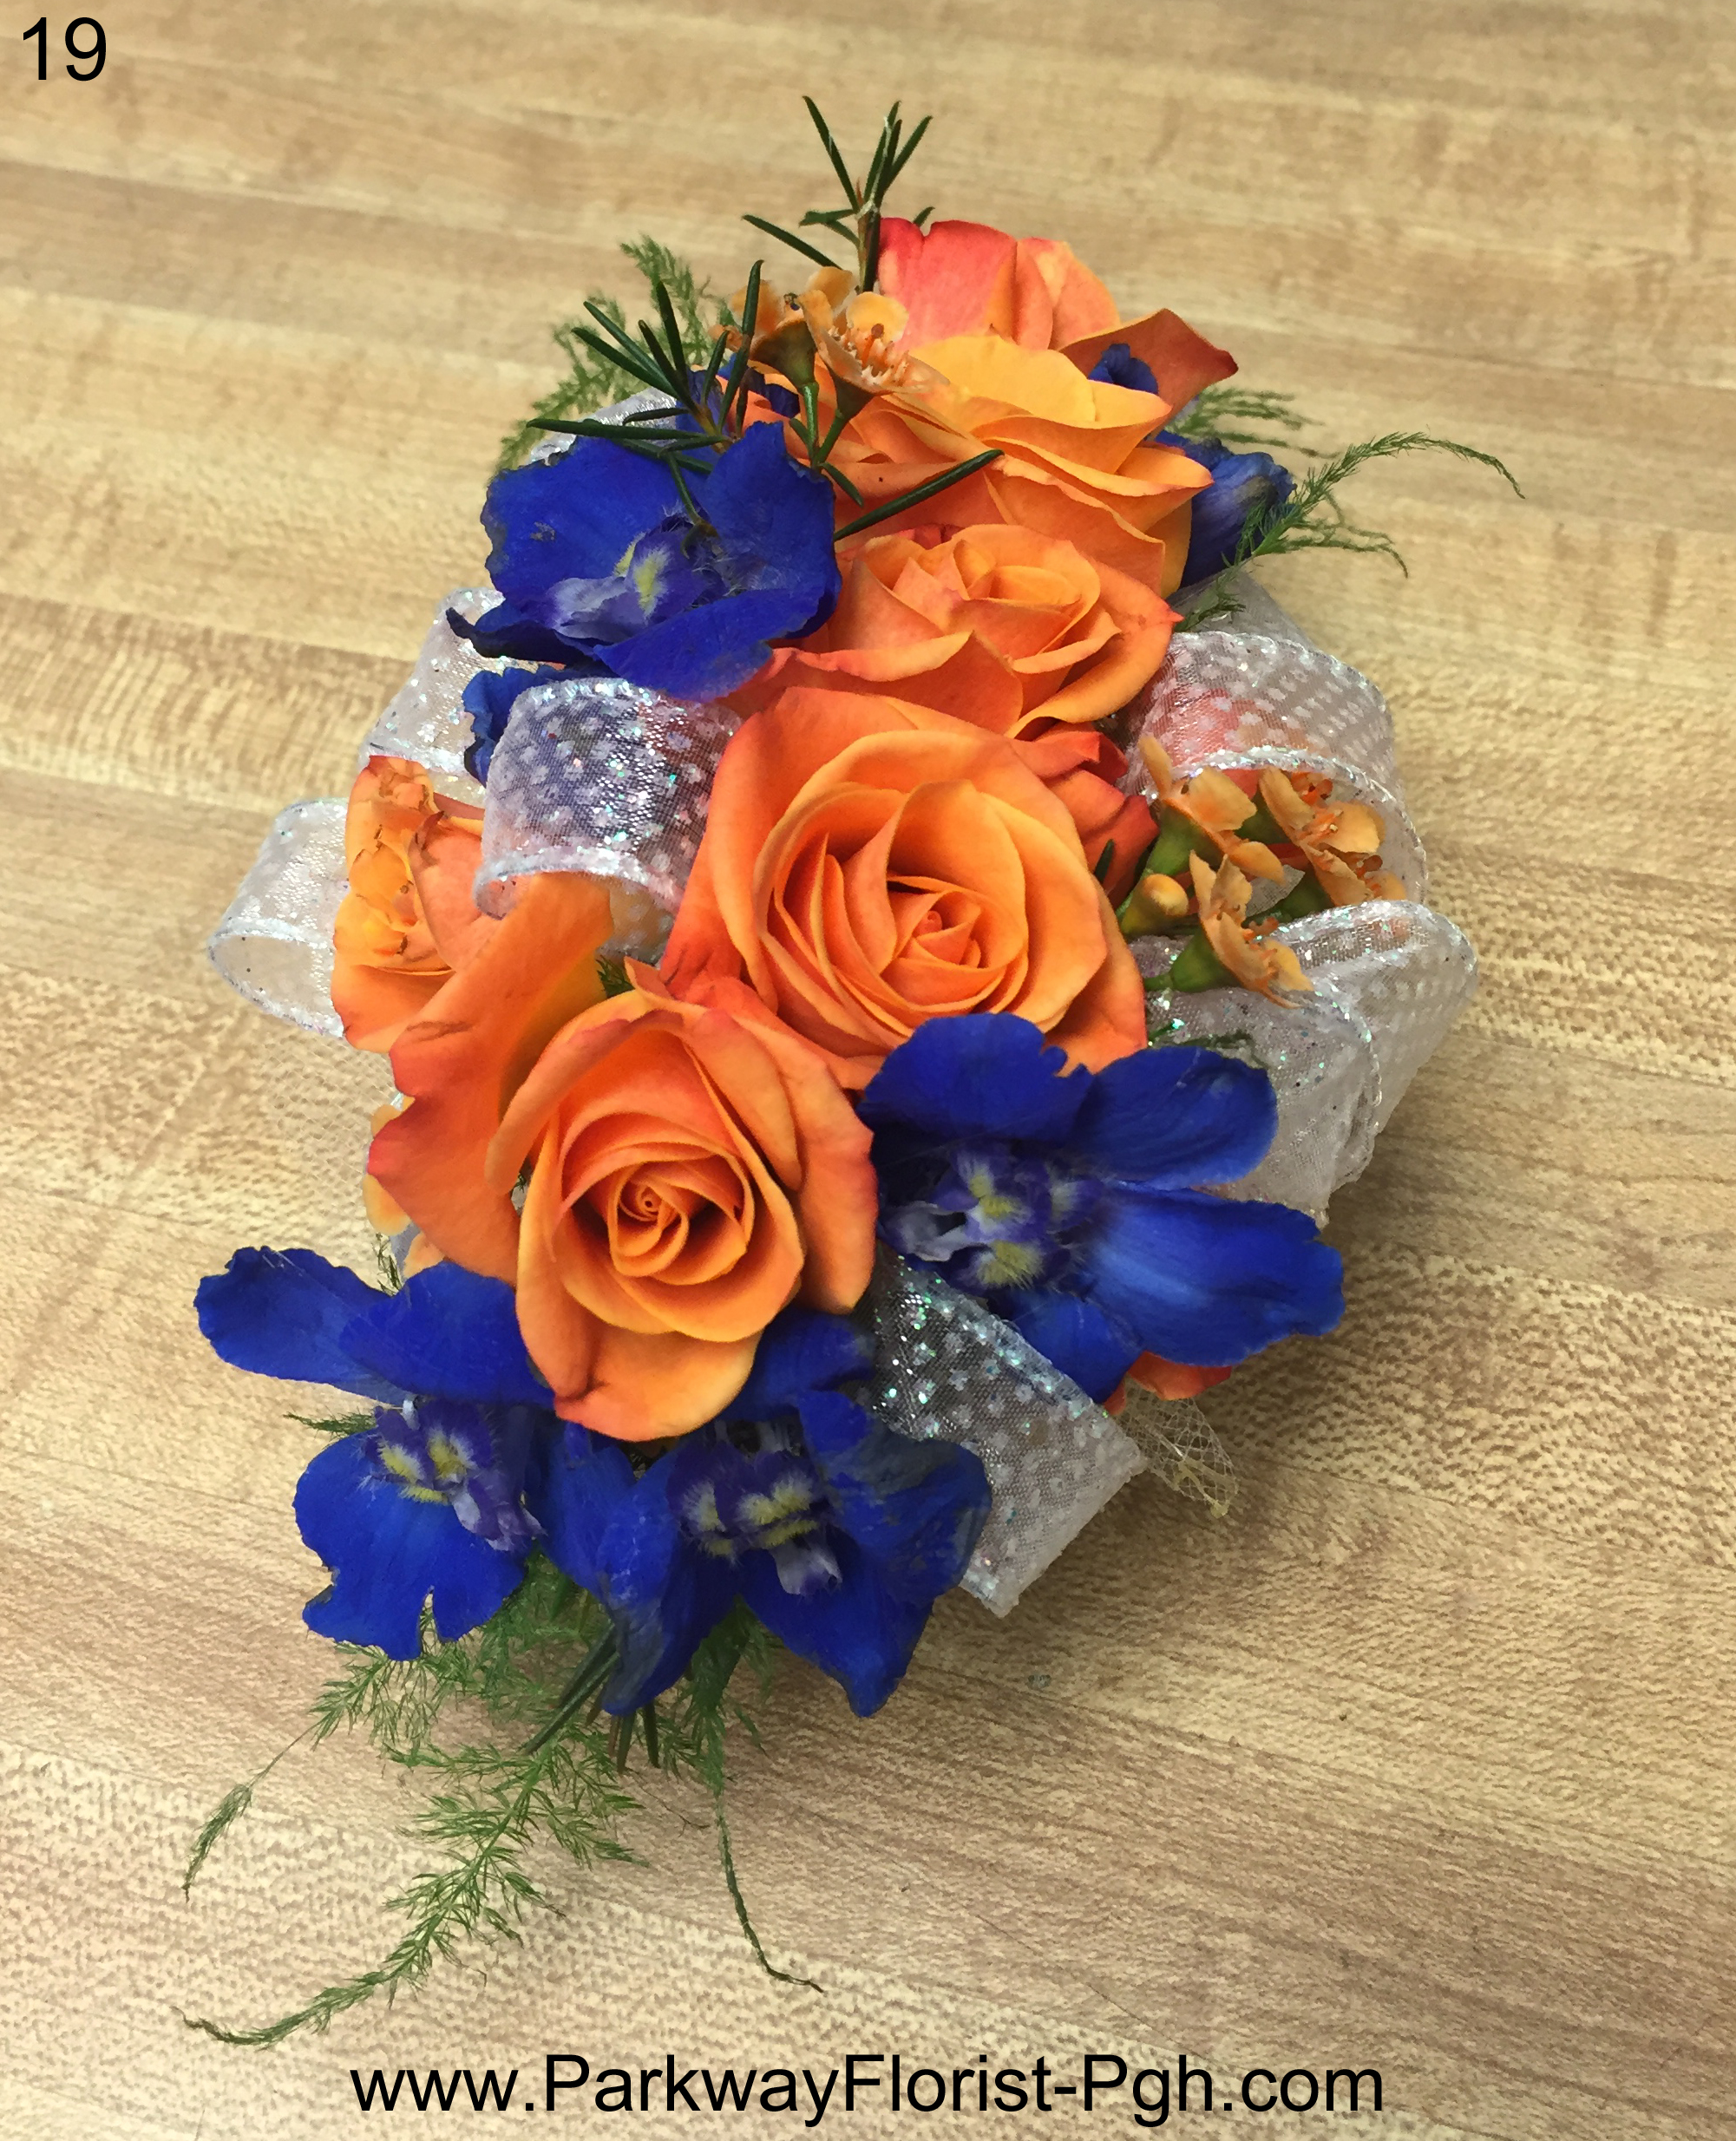 Prom flowers parkway florist pittsburgh blog advance ordering for prom flowers is required generally a minimum of 5 days in advance of your prom date izmirmasajfo Gallery